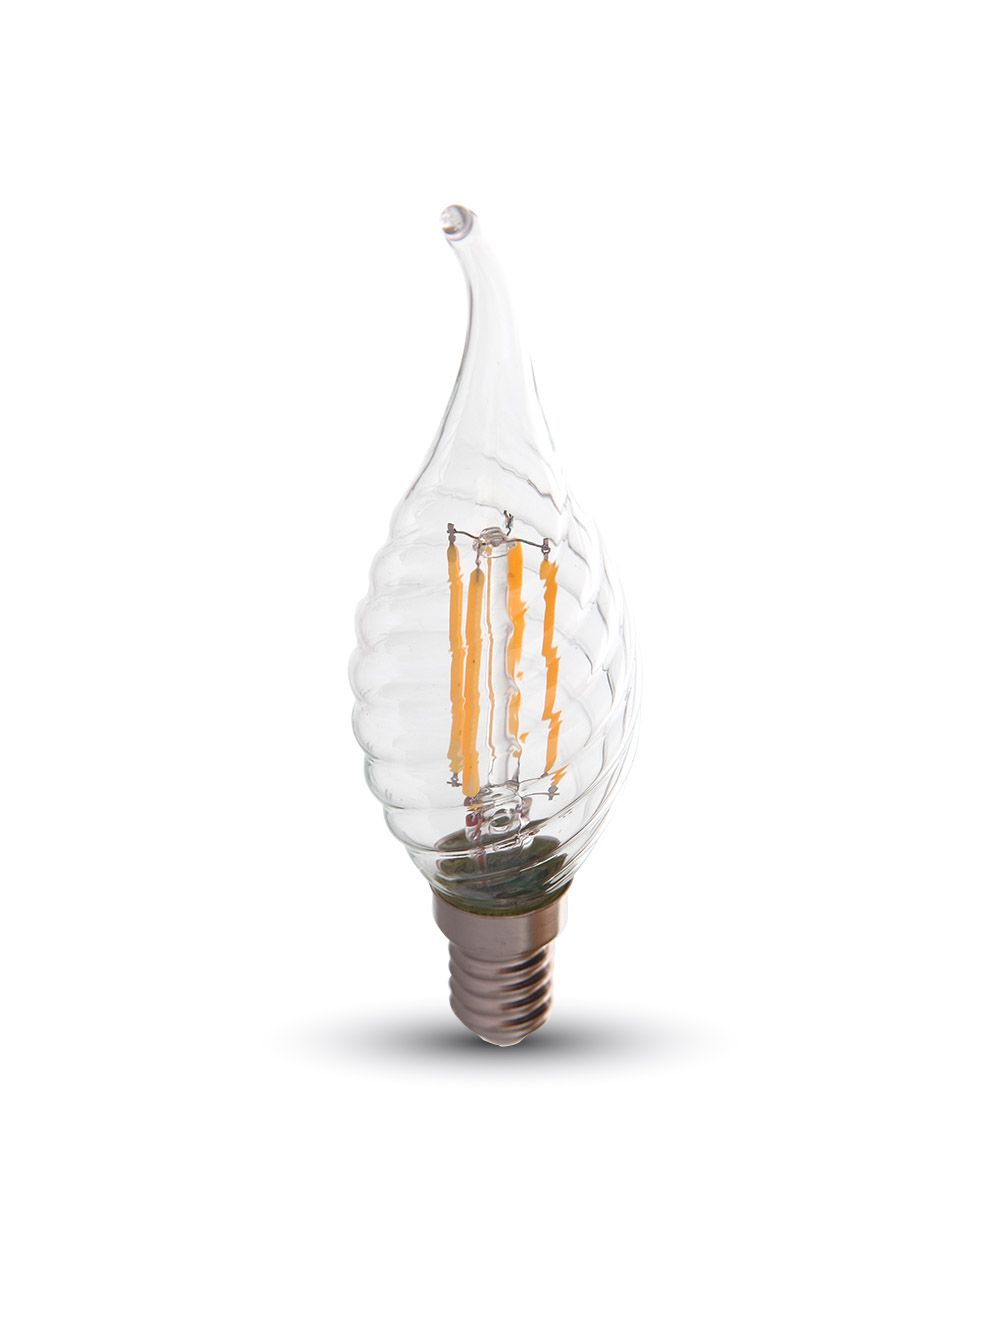 Led Glühbirne 4w Filament Patent E14 Twist Kerze Flamme Warmweiß